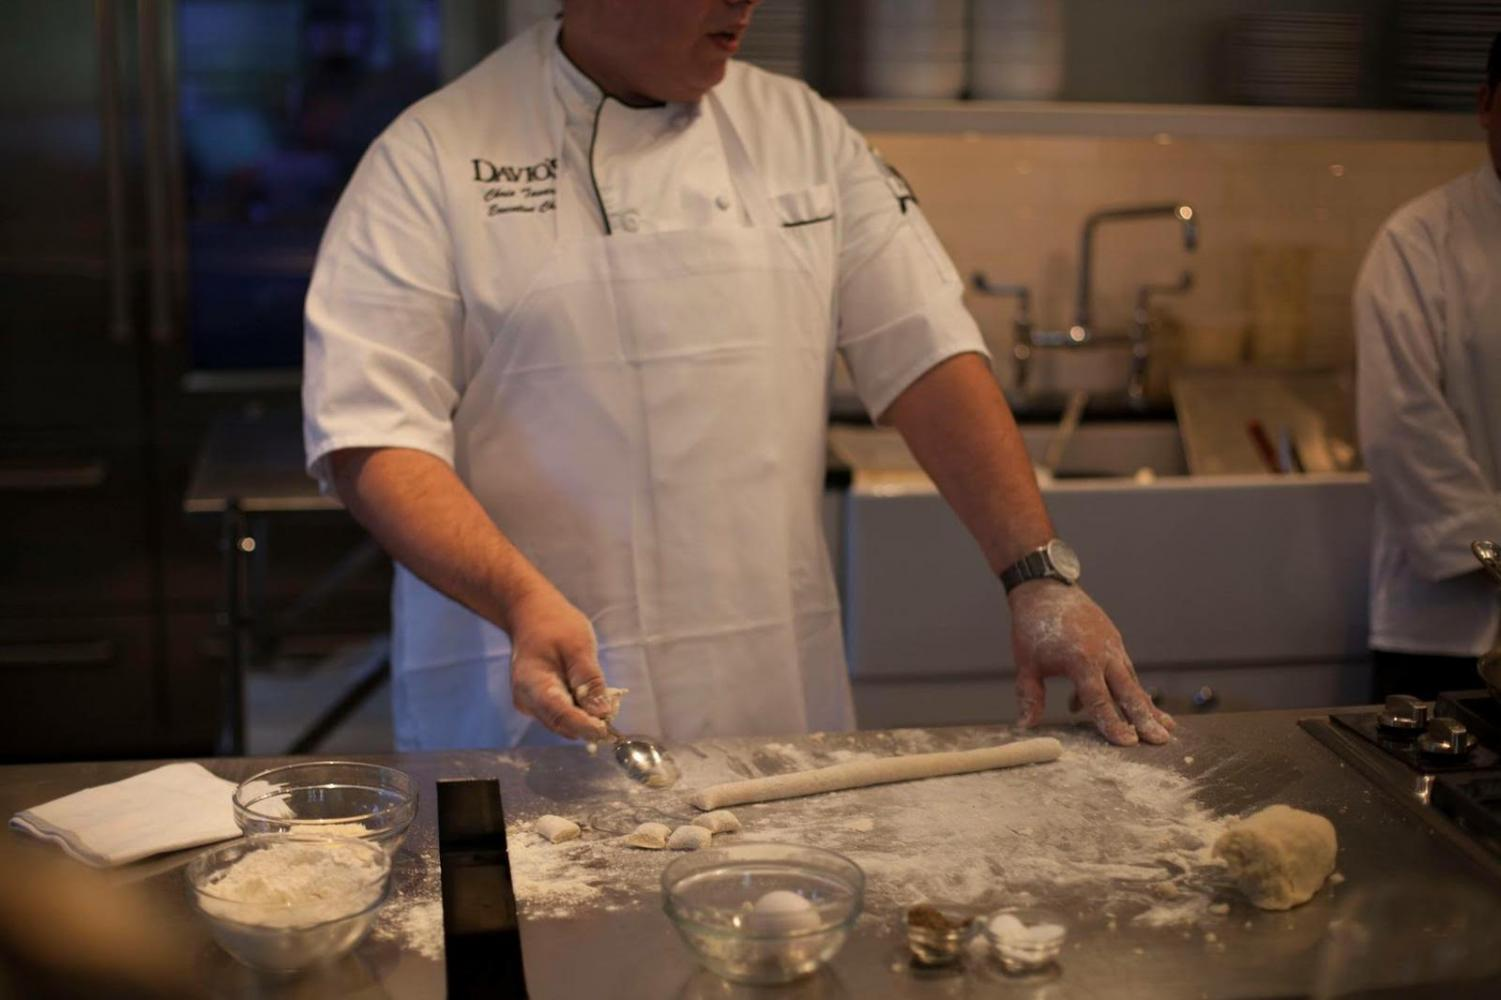 A chef at Davio's prepares gnocchi as part of a traditional Italian dinner.